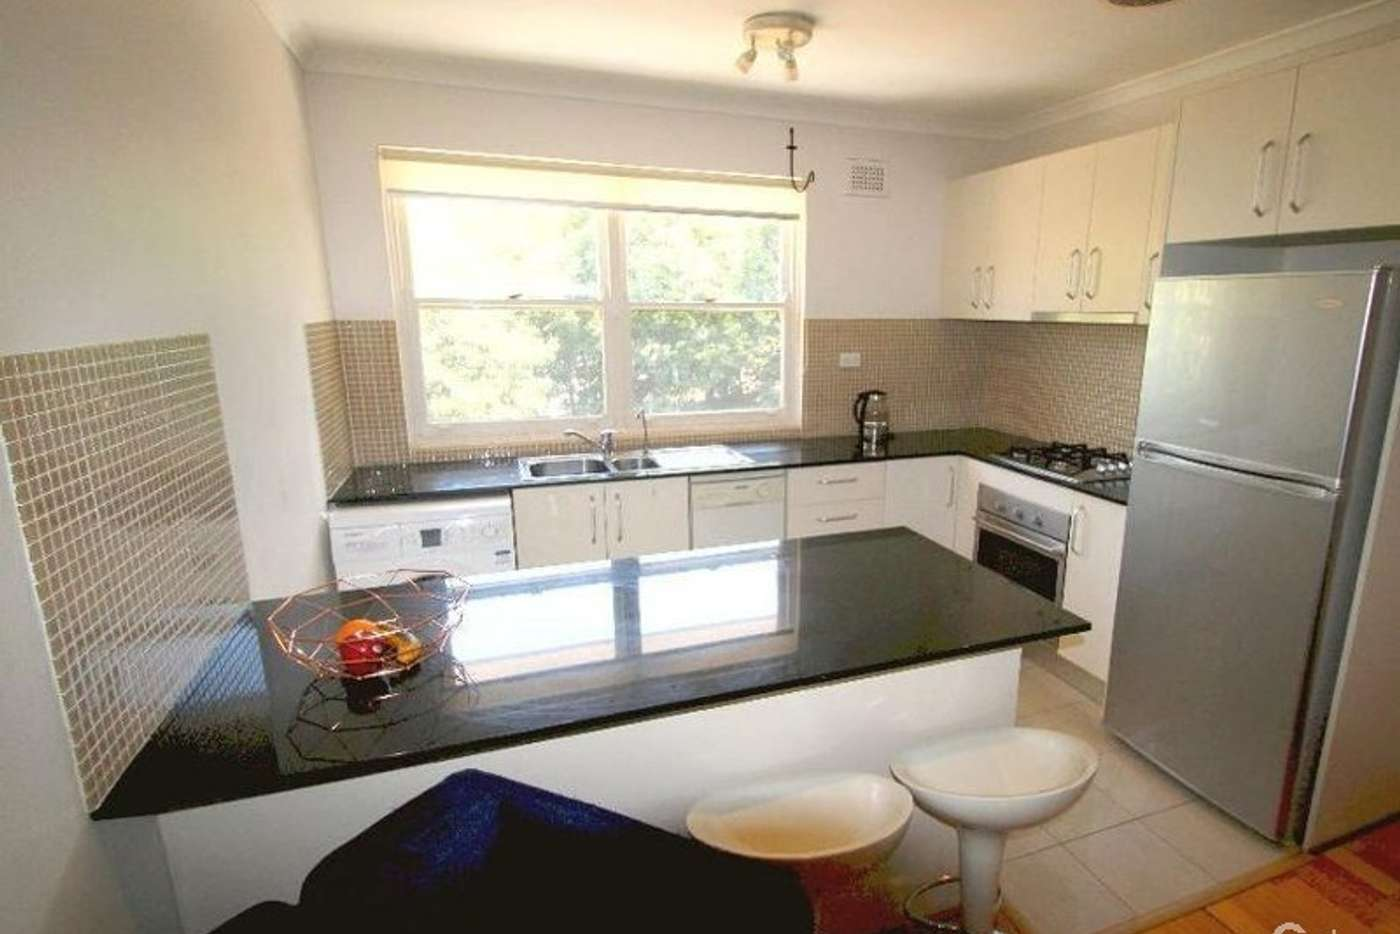 Main view of Homely apartment listing, 25/486 Illawarra Road, Marrickville NSW 2204